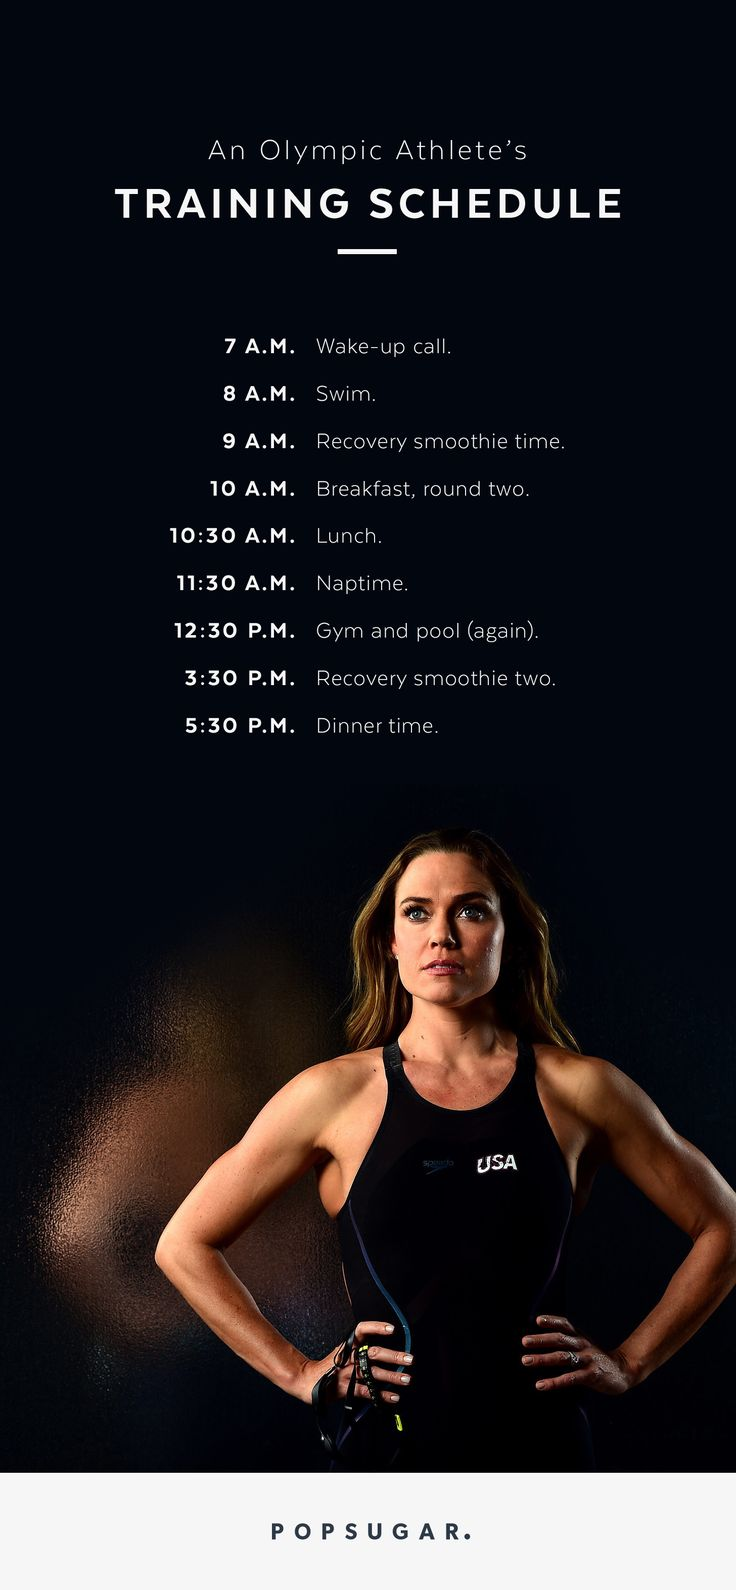 Olympic medalist swimmer Natalie Coughlin knows a thing or two about consistency. Check out her rigid and intense training schedule as she gears up for the Summer 2016 Olympic trials in Rio de Janeiro. THIS is how a swimmer stays so lean — hours upon hours of workouts!